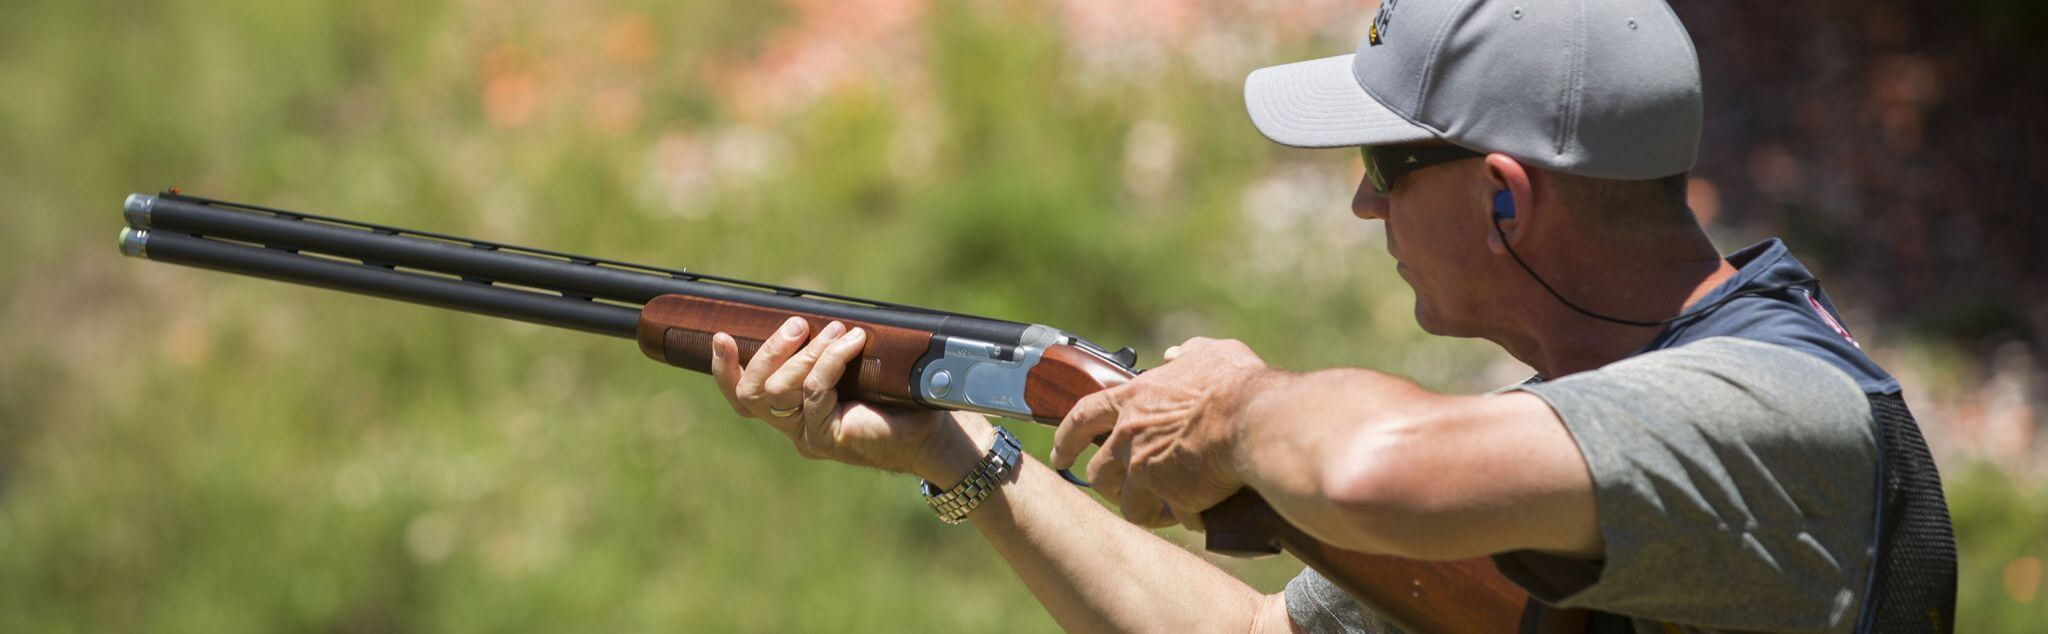 Clay Pigeon Shooting in Pembrokeshire